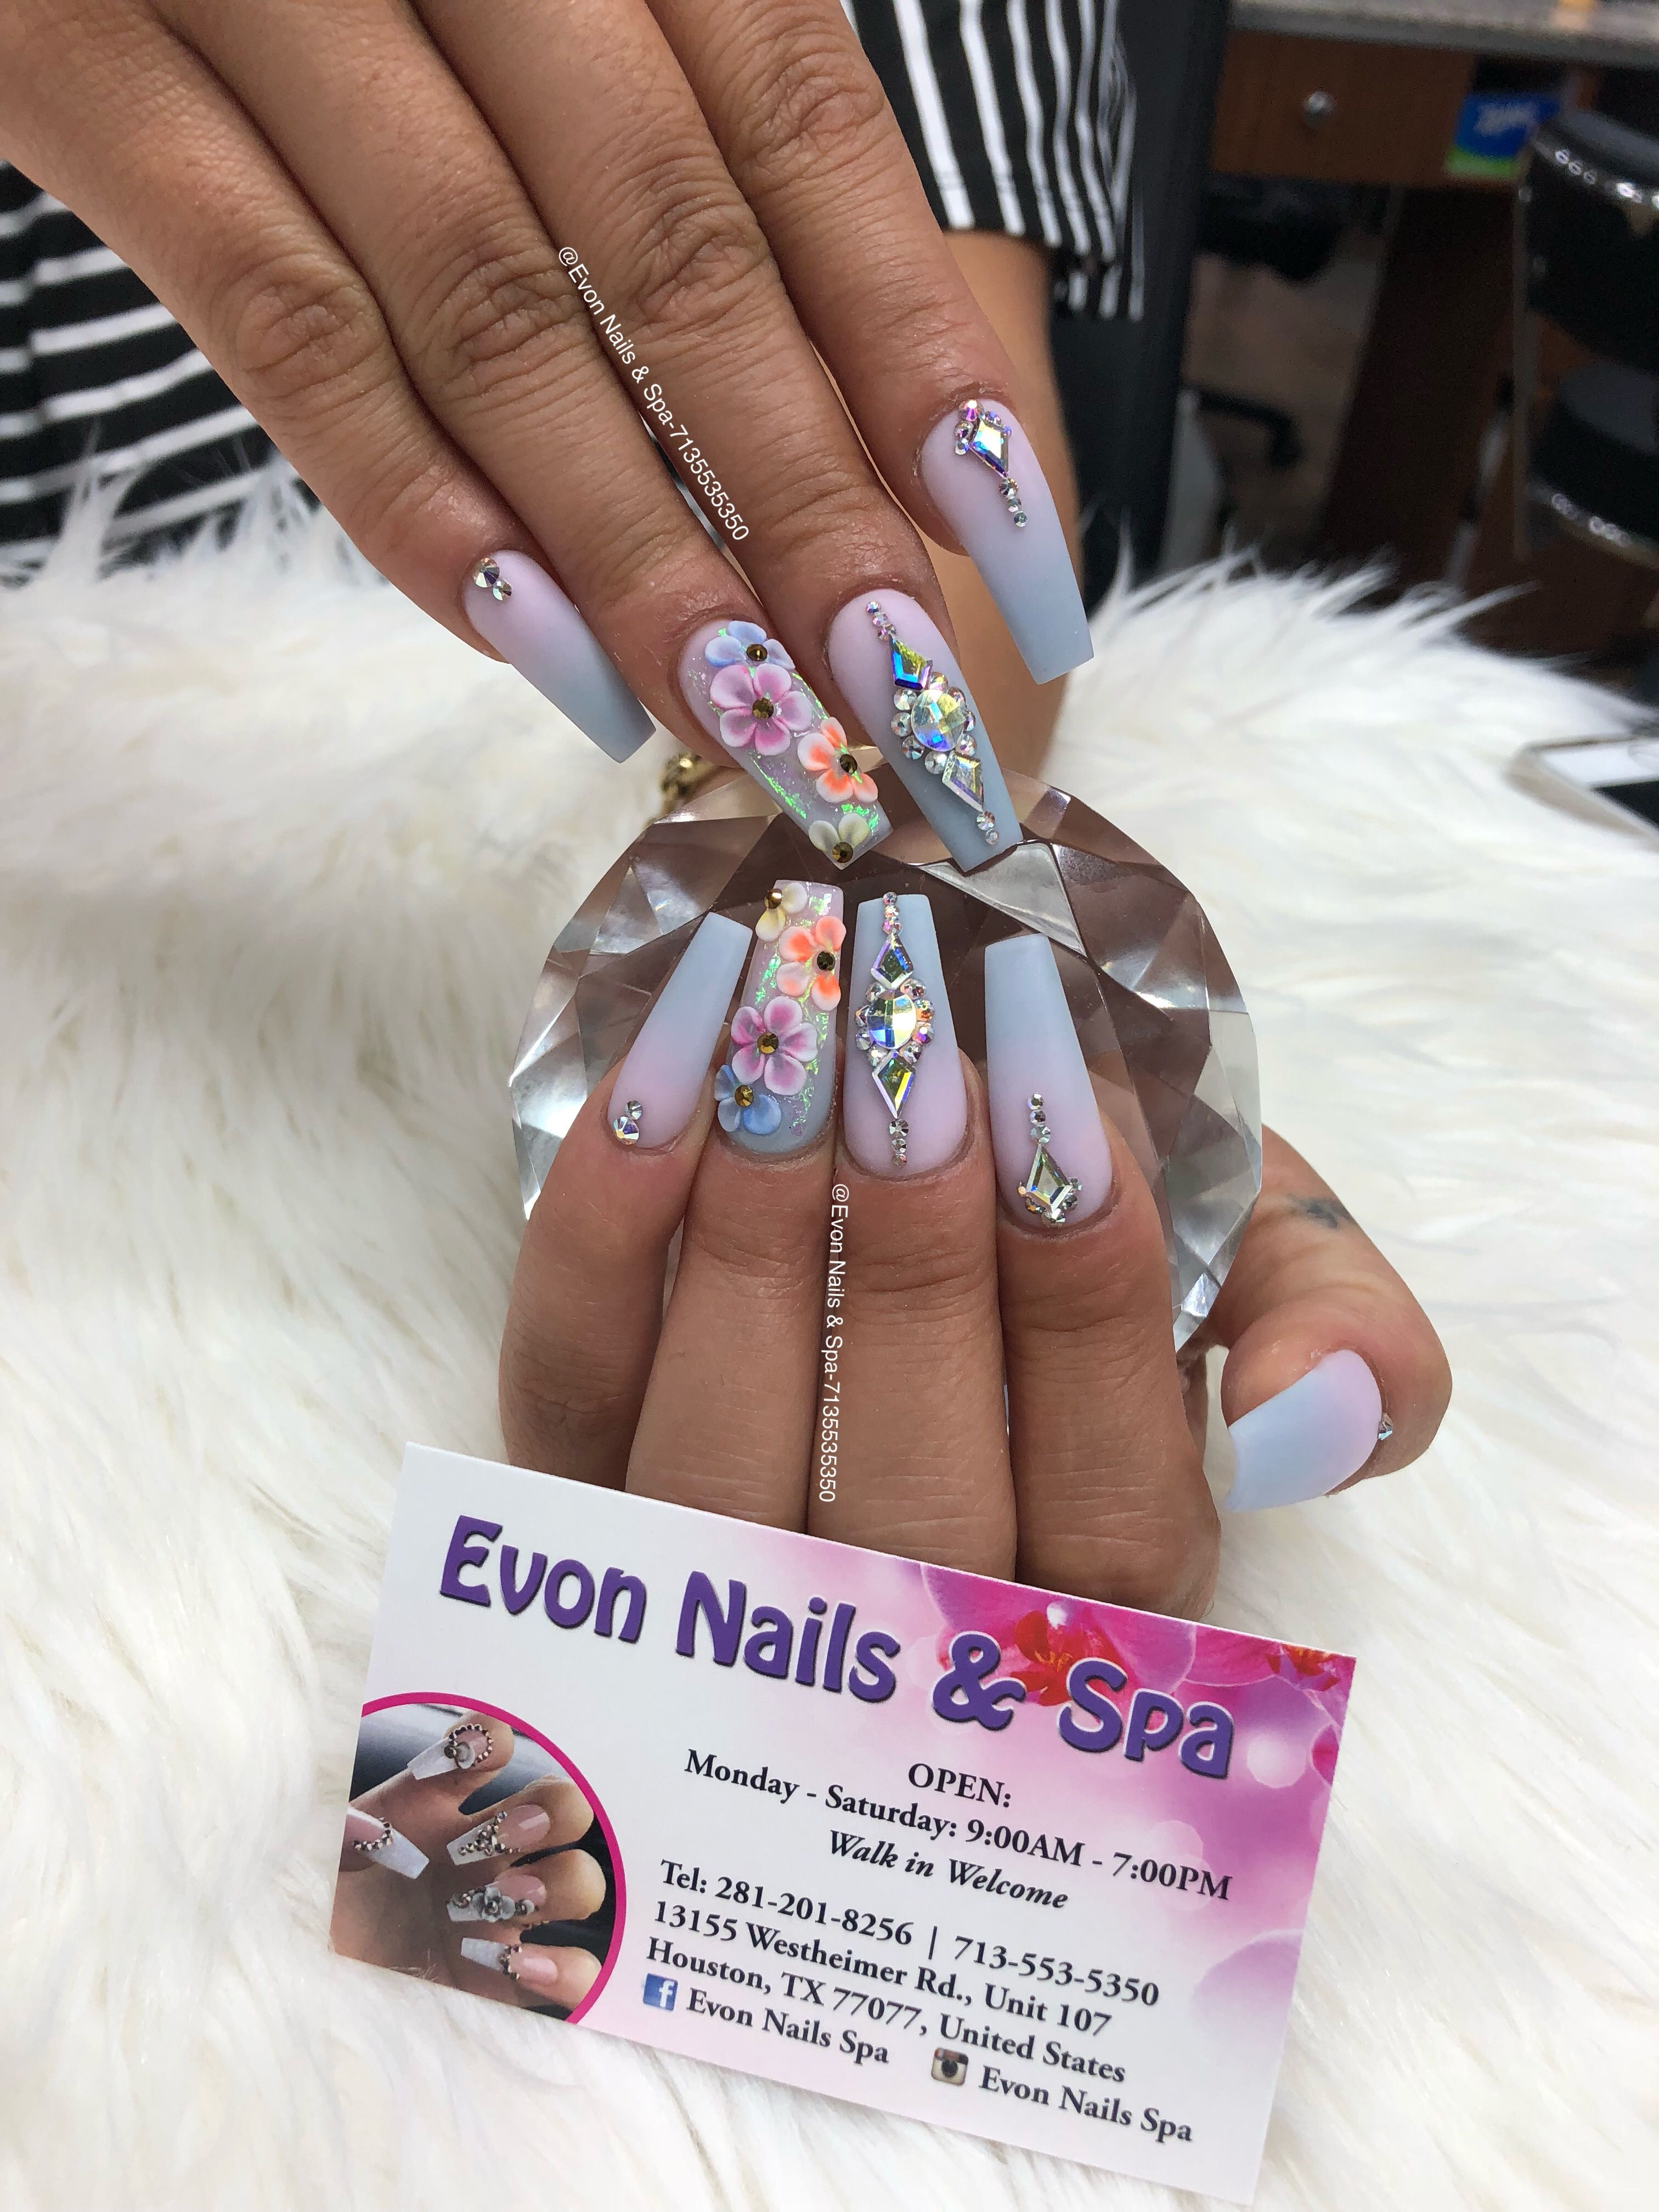 Pin By Evon Nails Spa On Evon Nails Spa With Images Nails